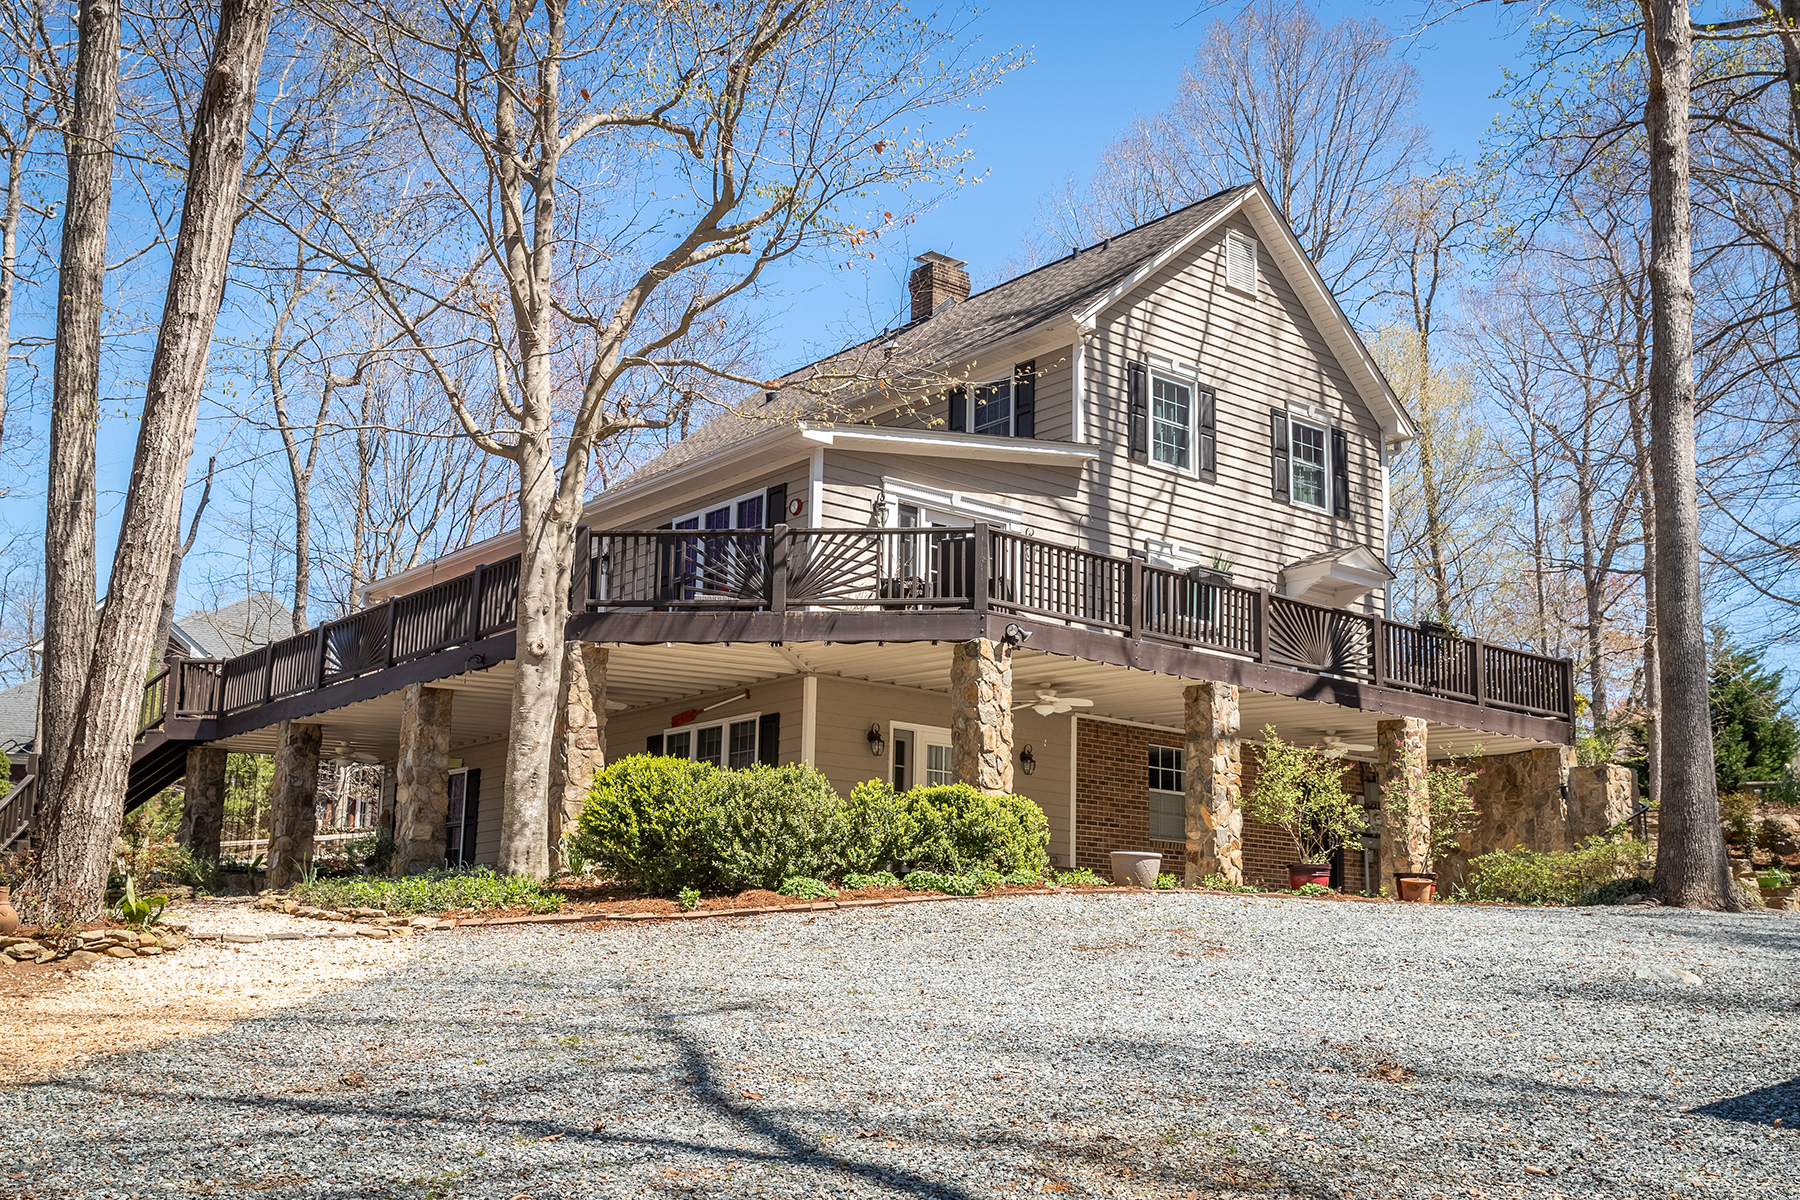 Single Family Home for Active at HIGH ROCK MOUNTAIN SHORES 762 Mountain Shore Drive Denton, North Carolina 27239 United States